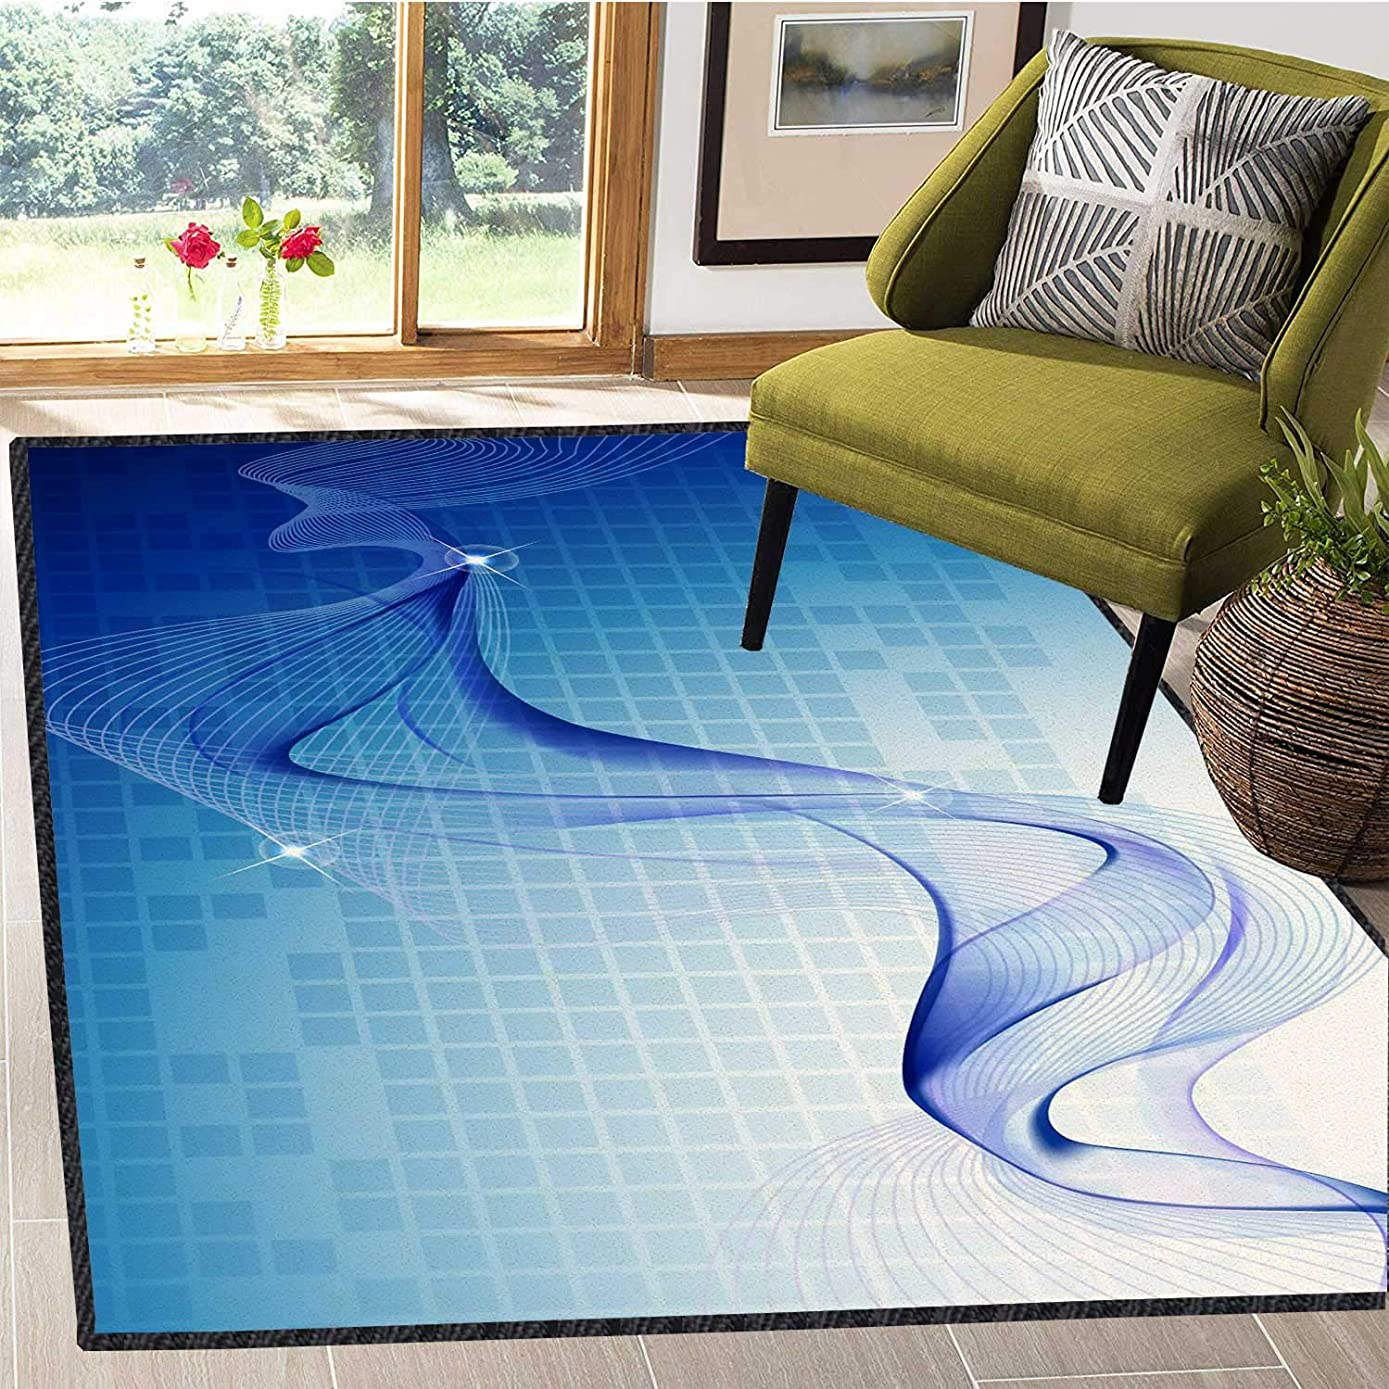 Area Carpet for Kids Room Technology Highlights The Psychedelic Sci Fi Diamond Style Water Absorption and Quick Drying Decorating Your Dreams Multi Color, 6X9 Ft